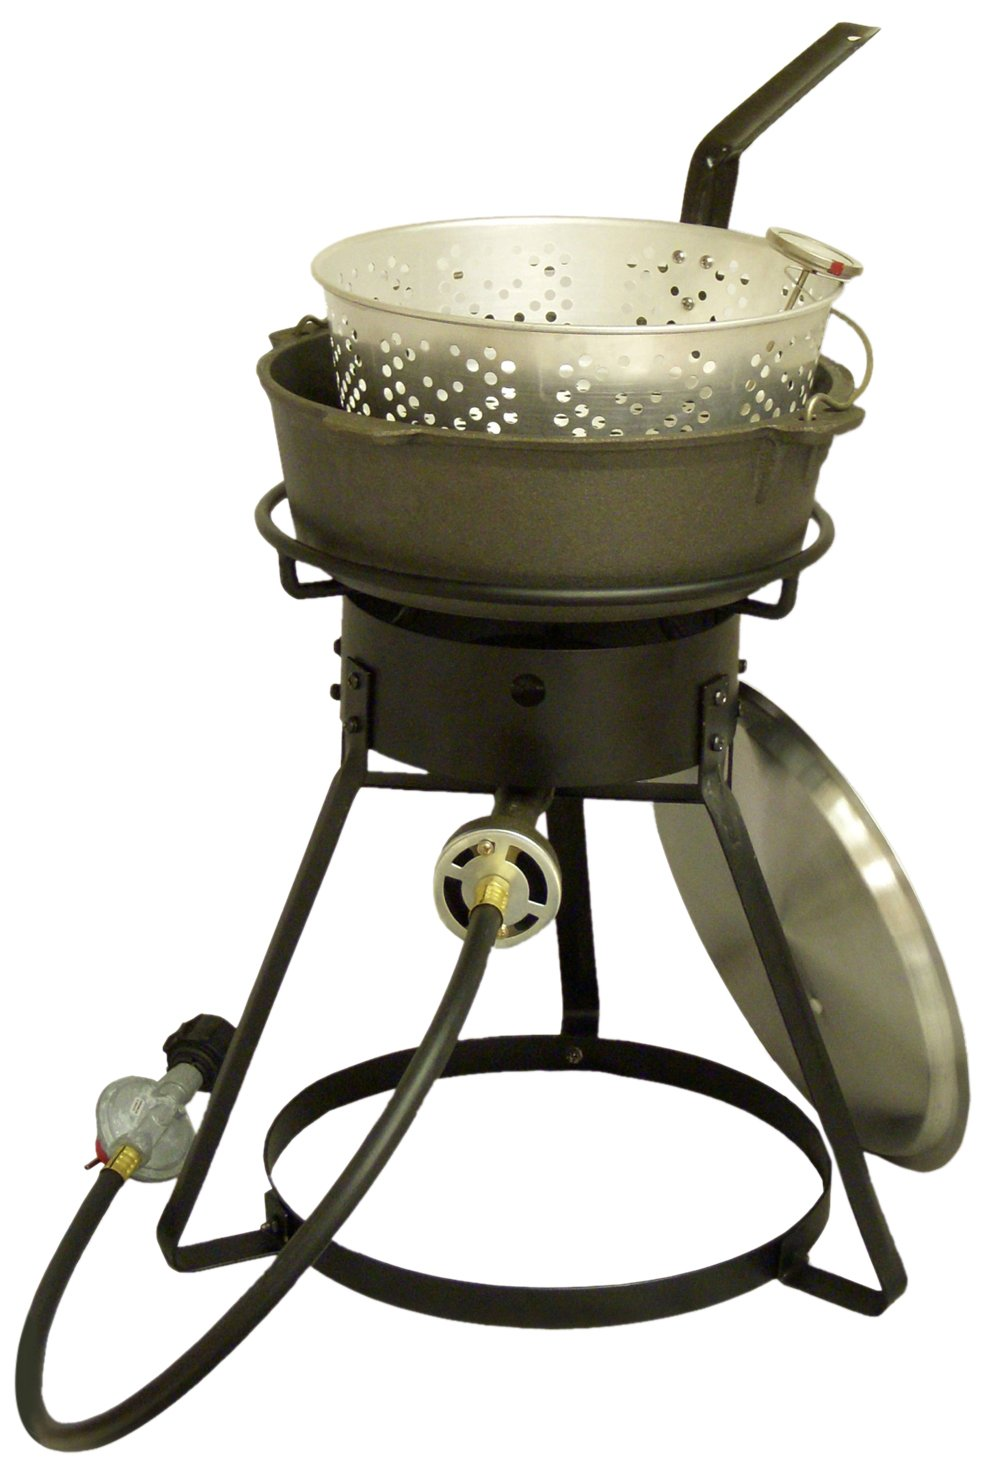 King Kooker 1644 16-Inch Bolt Together Outdoor Propane Cooker with Cast Iron Pot Package